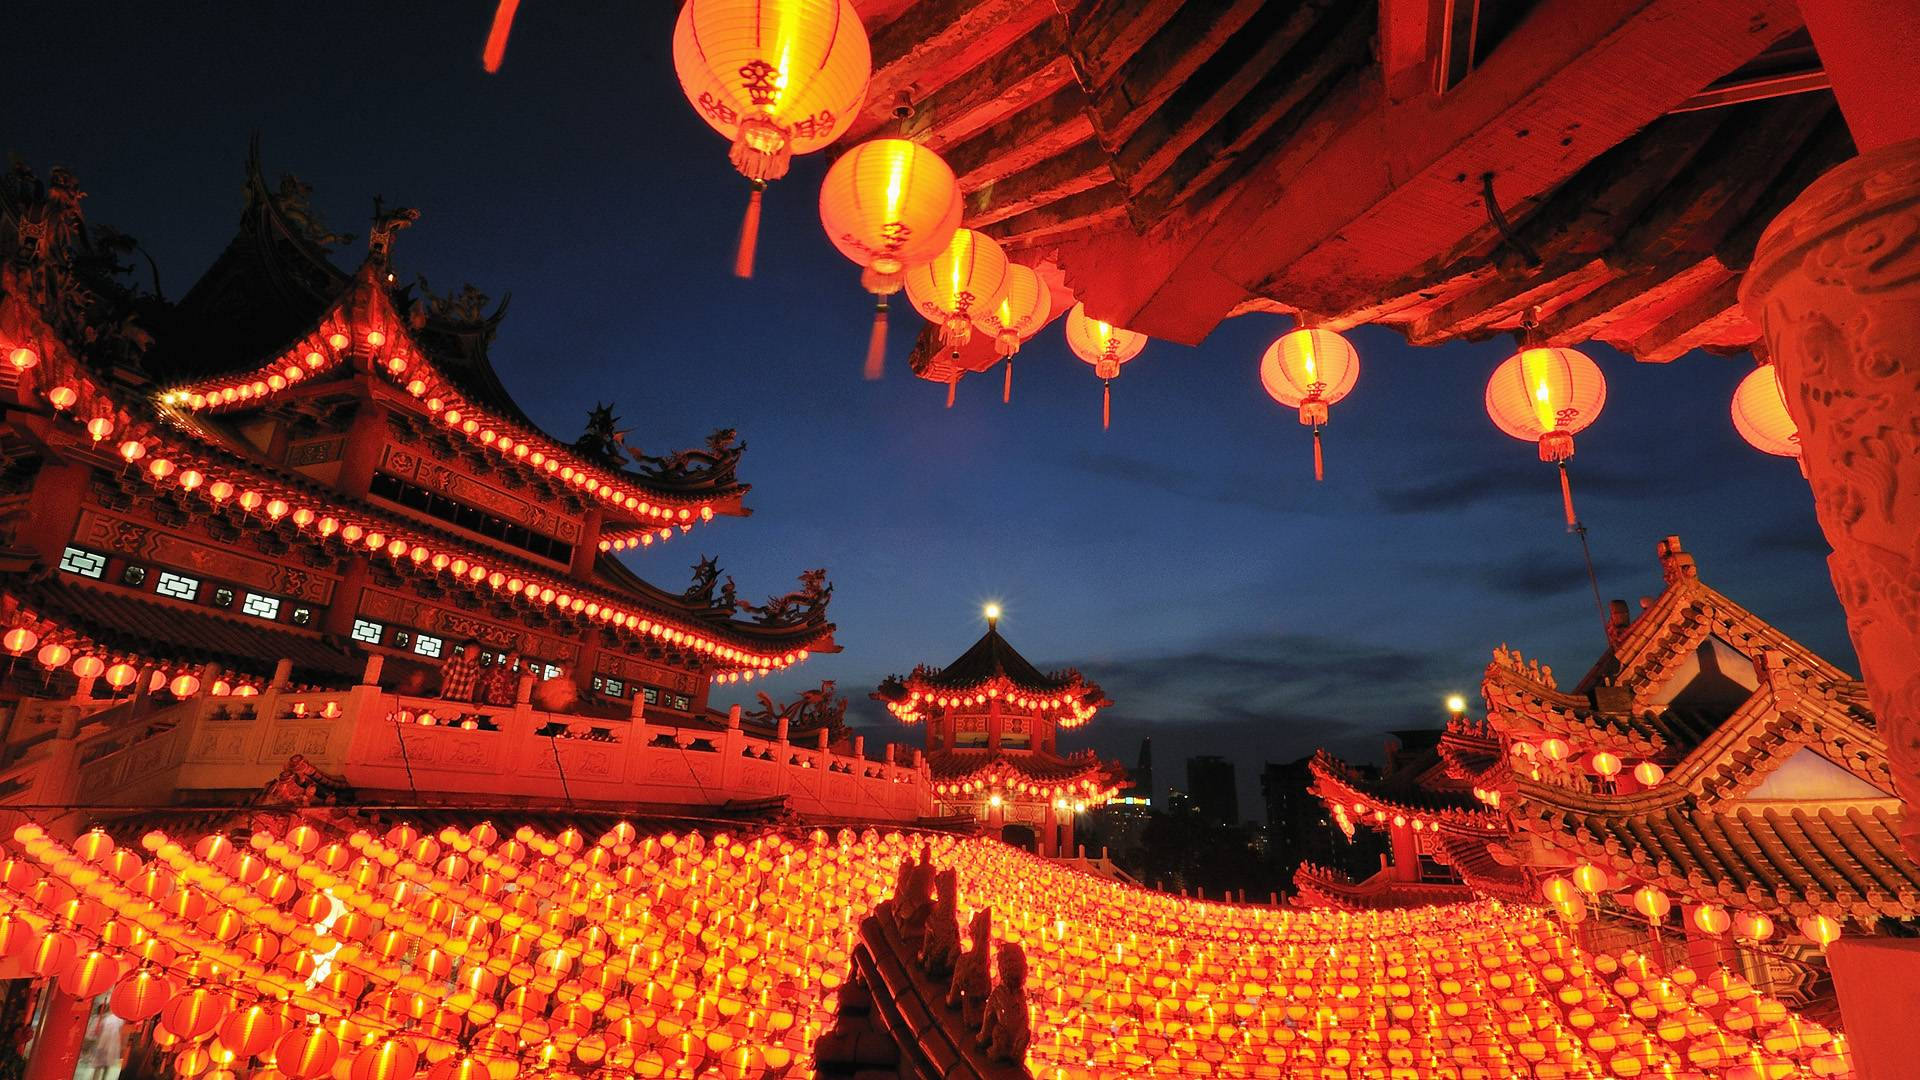 Chinese New Year Wallpapers   Wallpaper High Definition High Quality 1920x1080